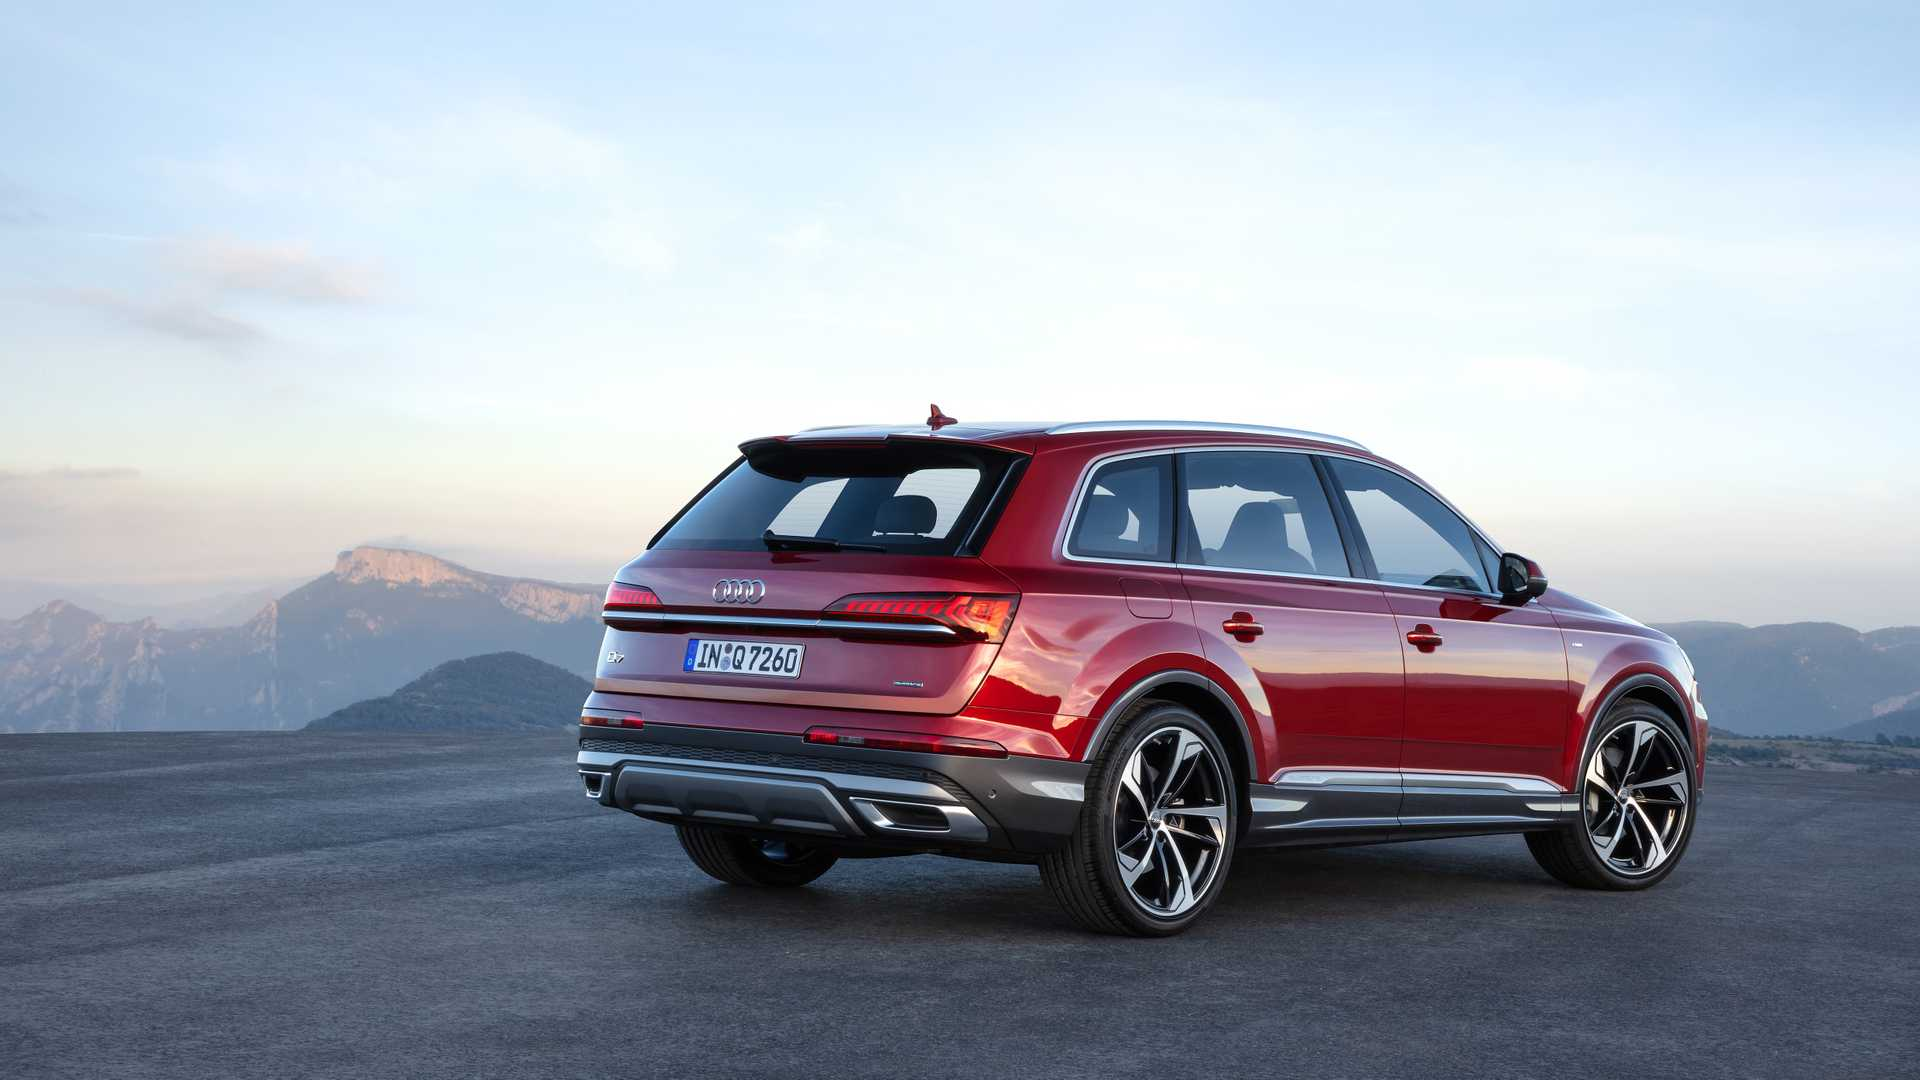 Audi Suv Models >> 2020 Audi Q7 Facelift Looks Way More Rugged, Borrows ...